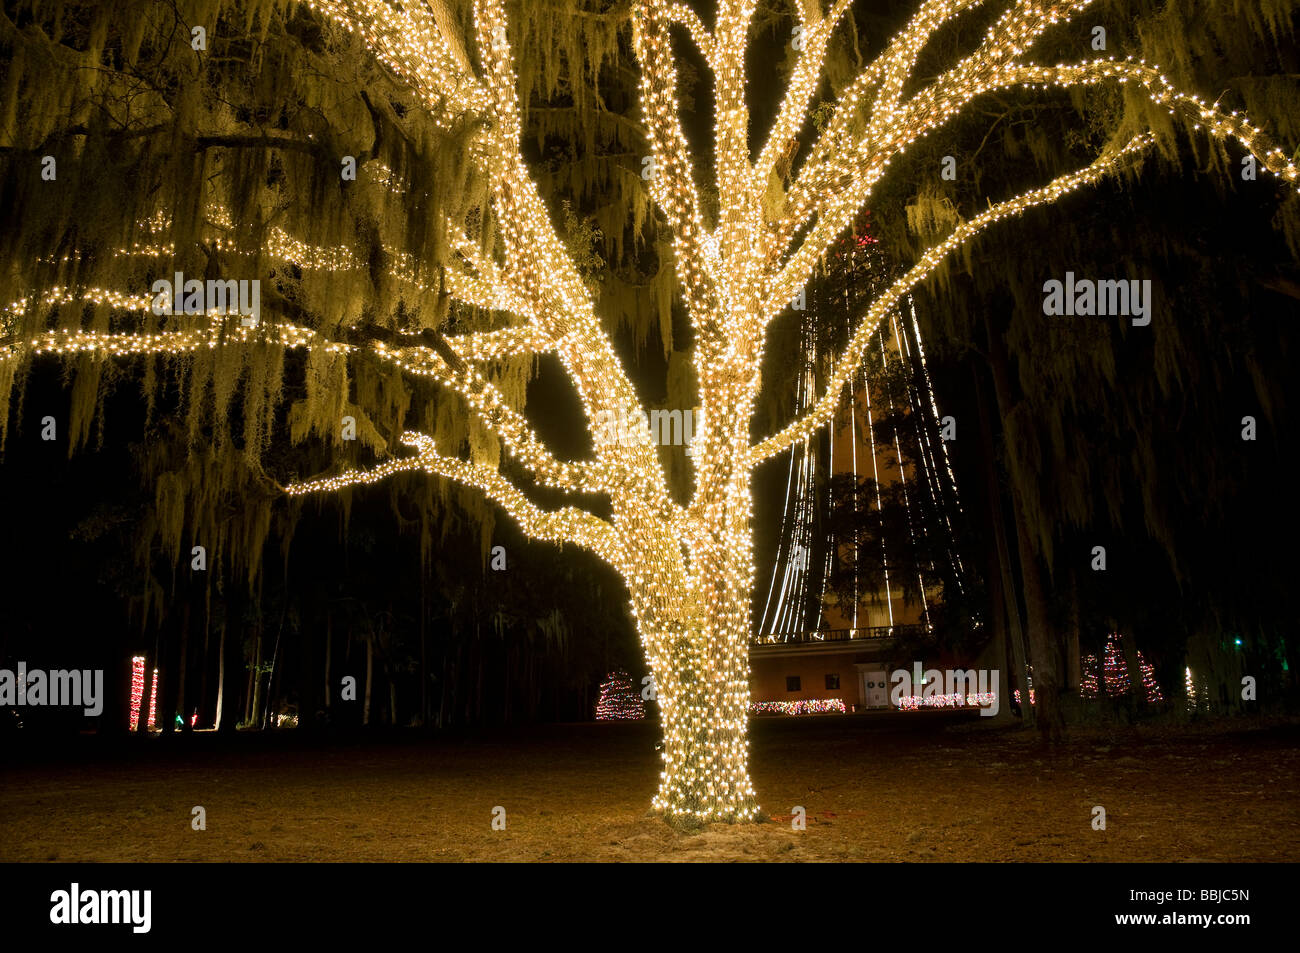 Spanish Moss Christmas Stock Photos & Spanish Moss Christmas Stock ...